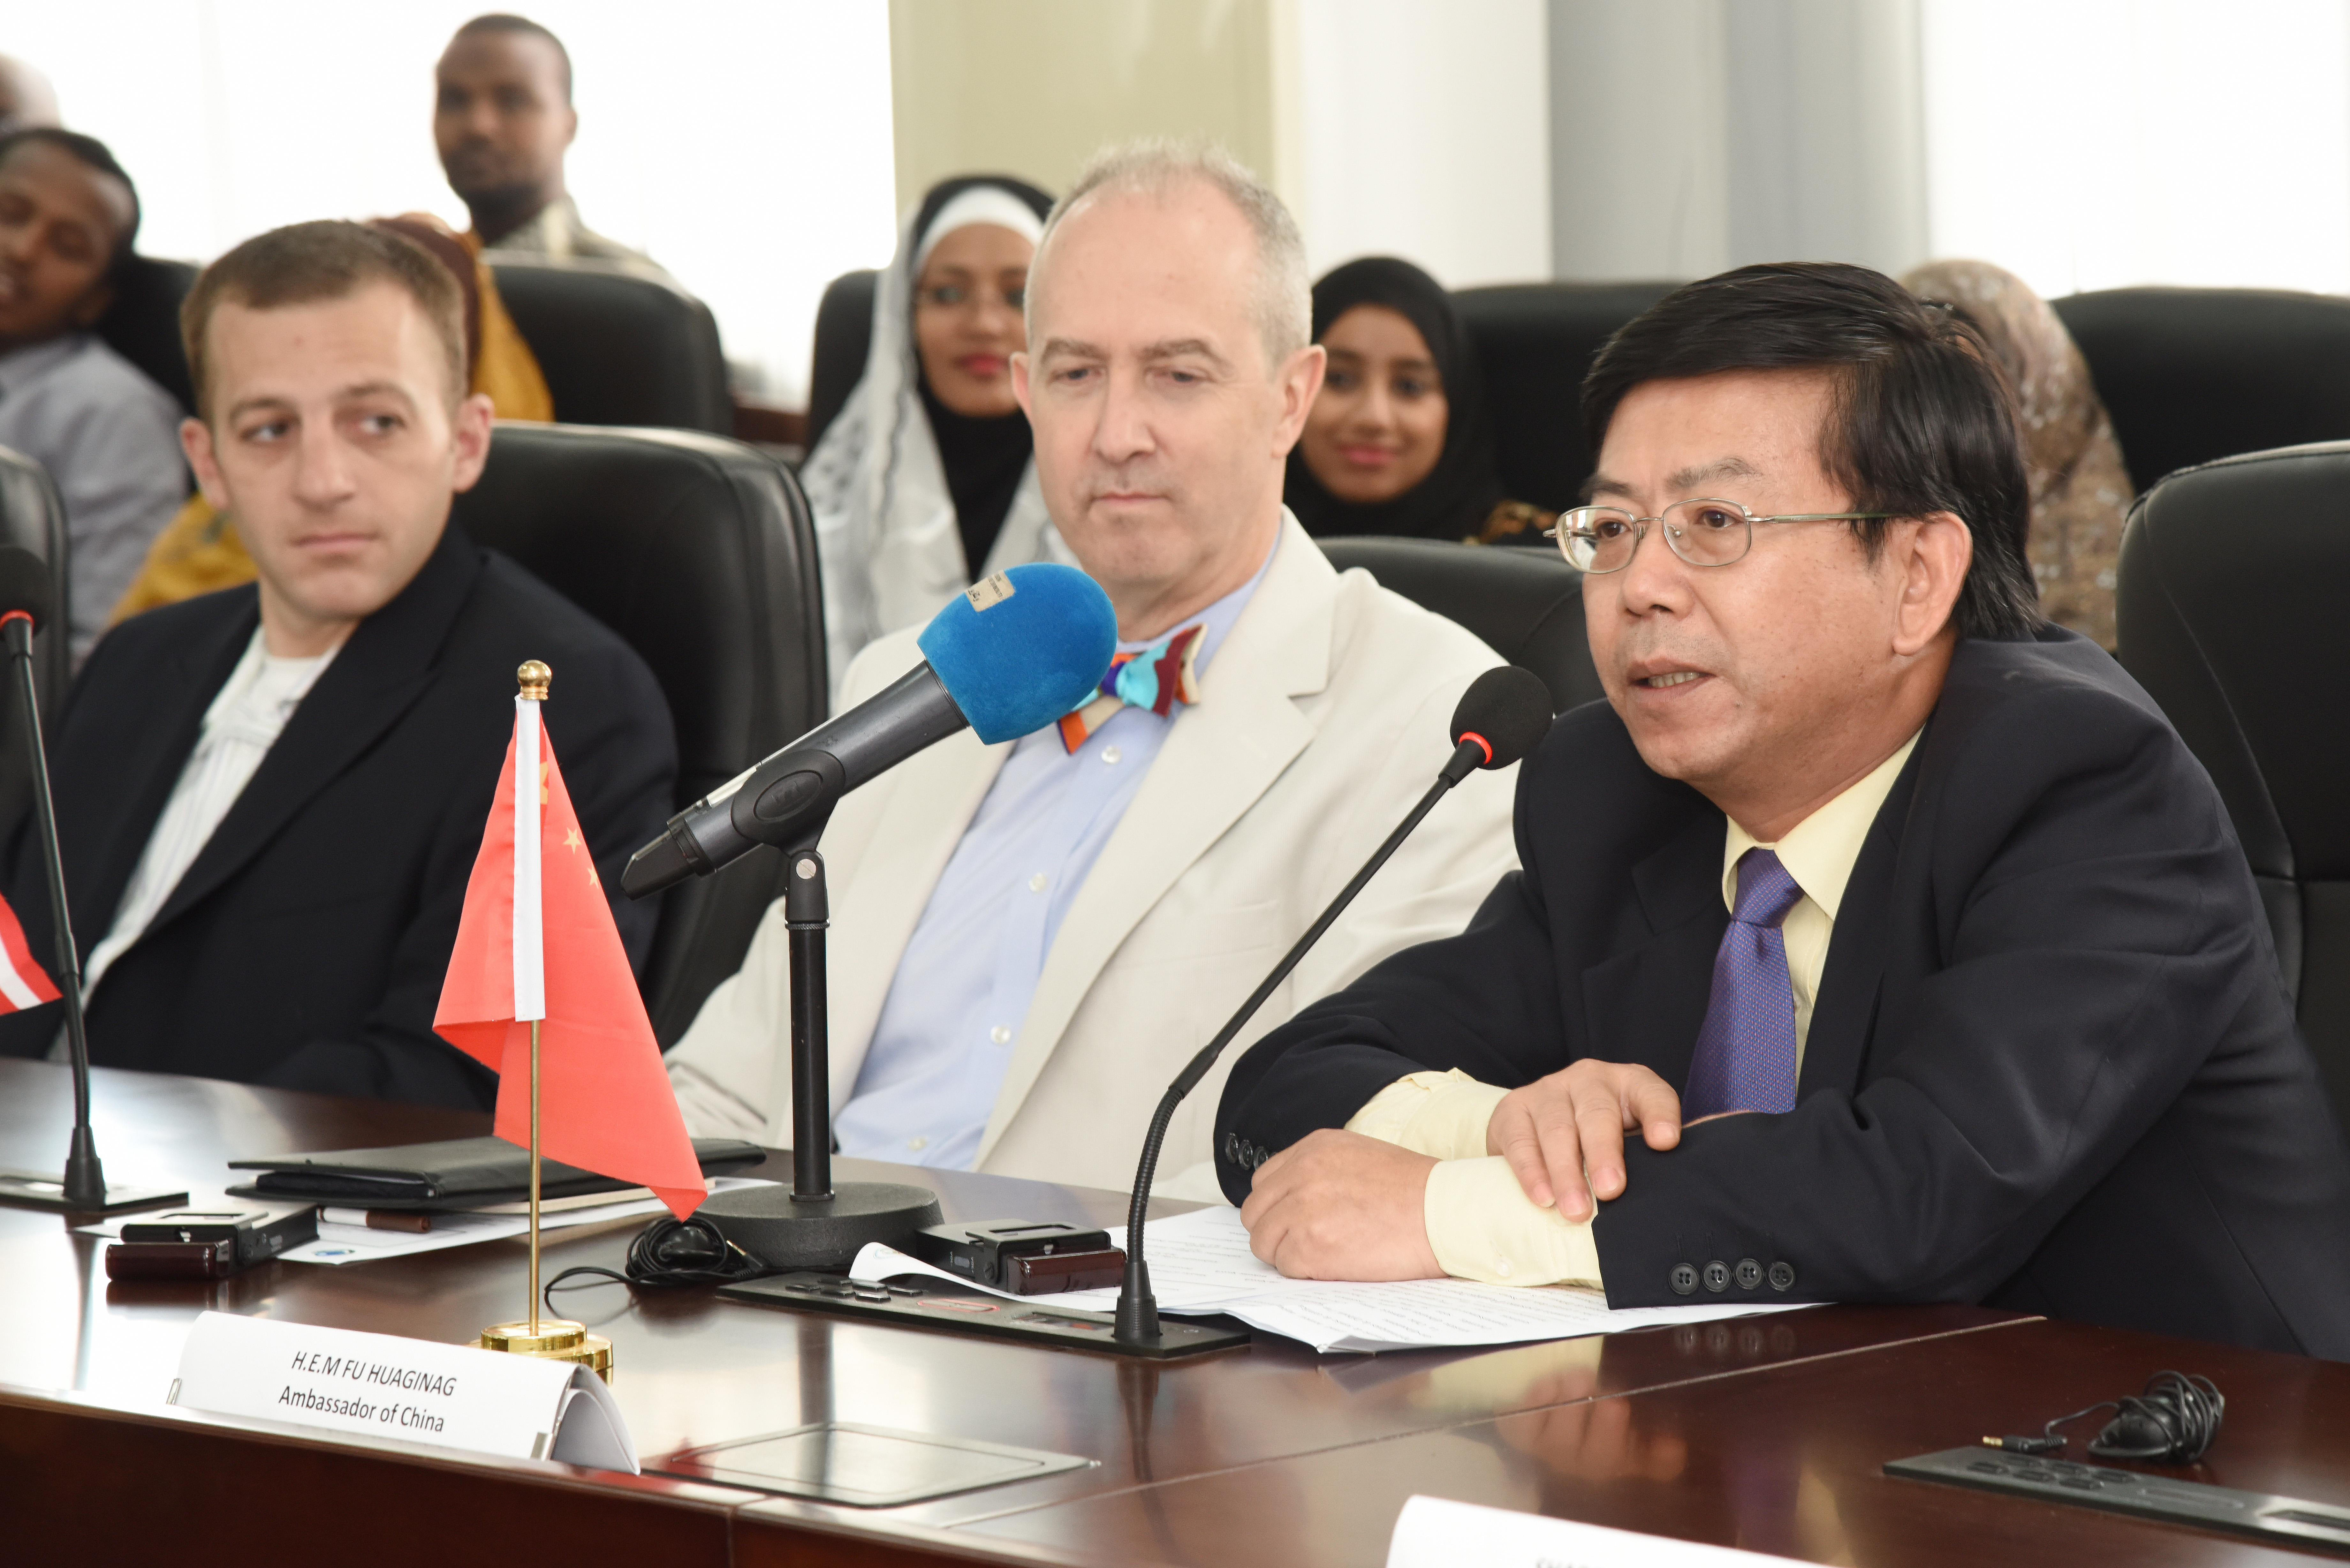 Fu Huaginag, Chinese Ambassador to Djibouti, addresses honored guests and foreign language students during a graduation ceremony at the Institute of Diplomatic Studies in Djibouti, June 14, 2015.  The graduates have spent the last academic year studying English, Chinese or Amharic.  (U.S. Air Force photo by Staff Sgt. Maria Bowman)